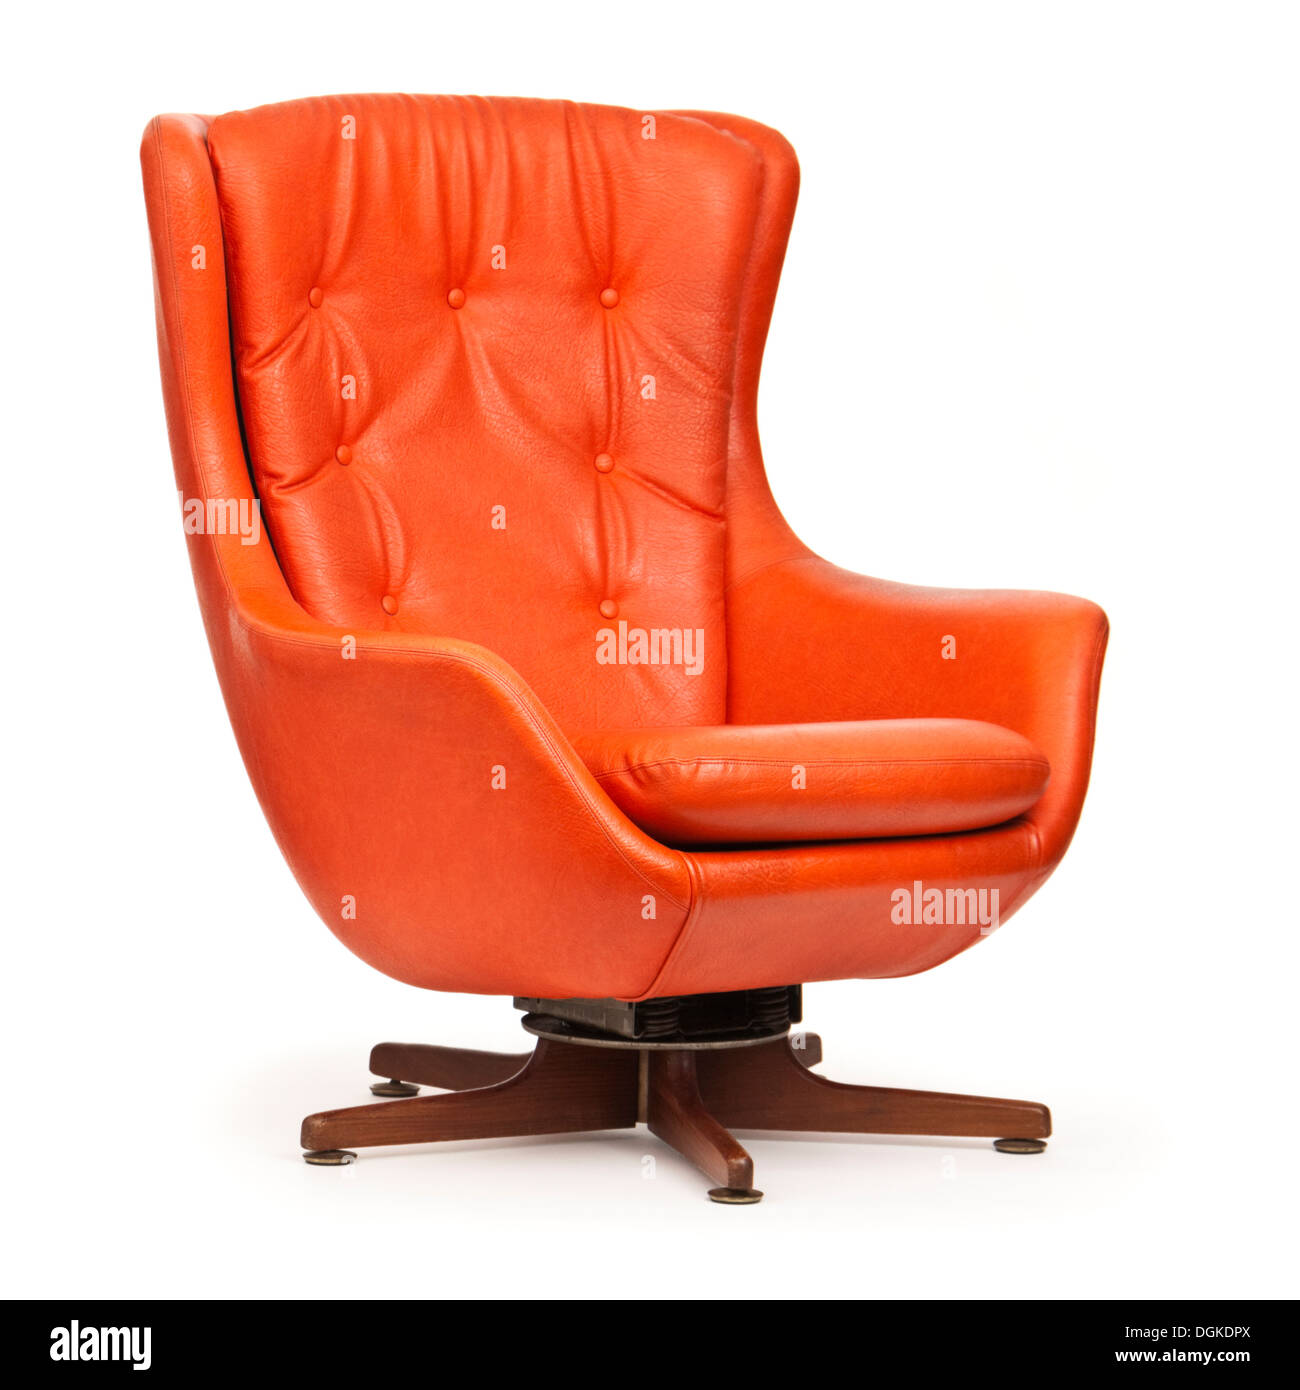 Vintage Orange Swivel And Tilt Armchair From The Late 1960u0027s / Early 1970u0027s